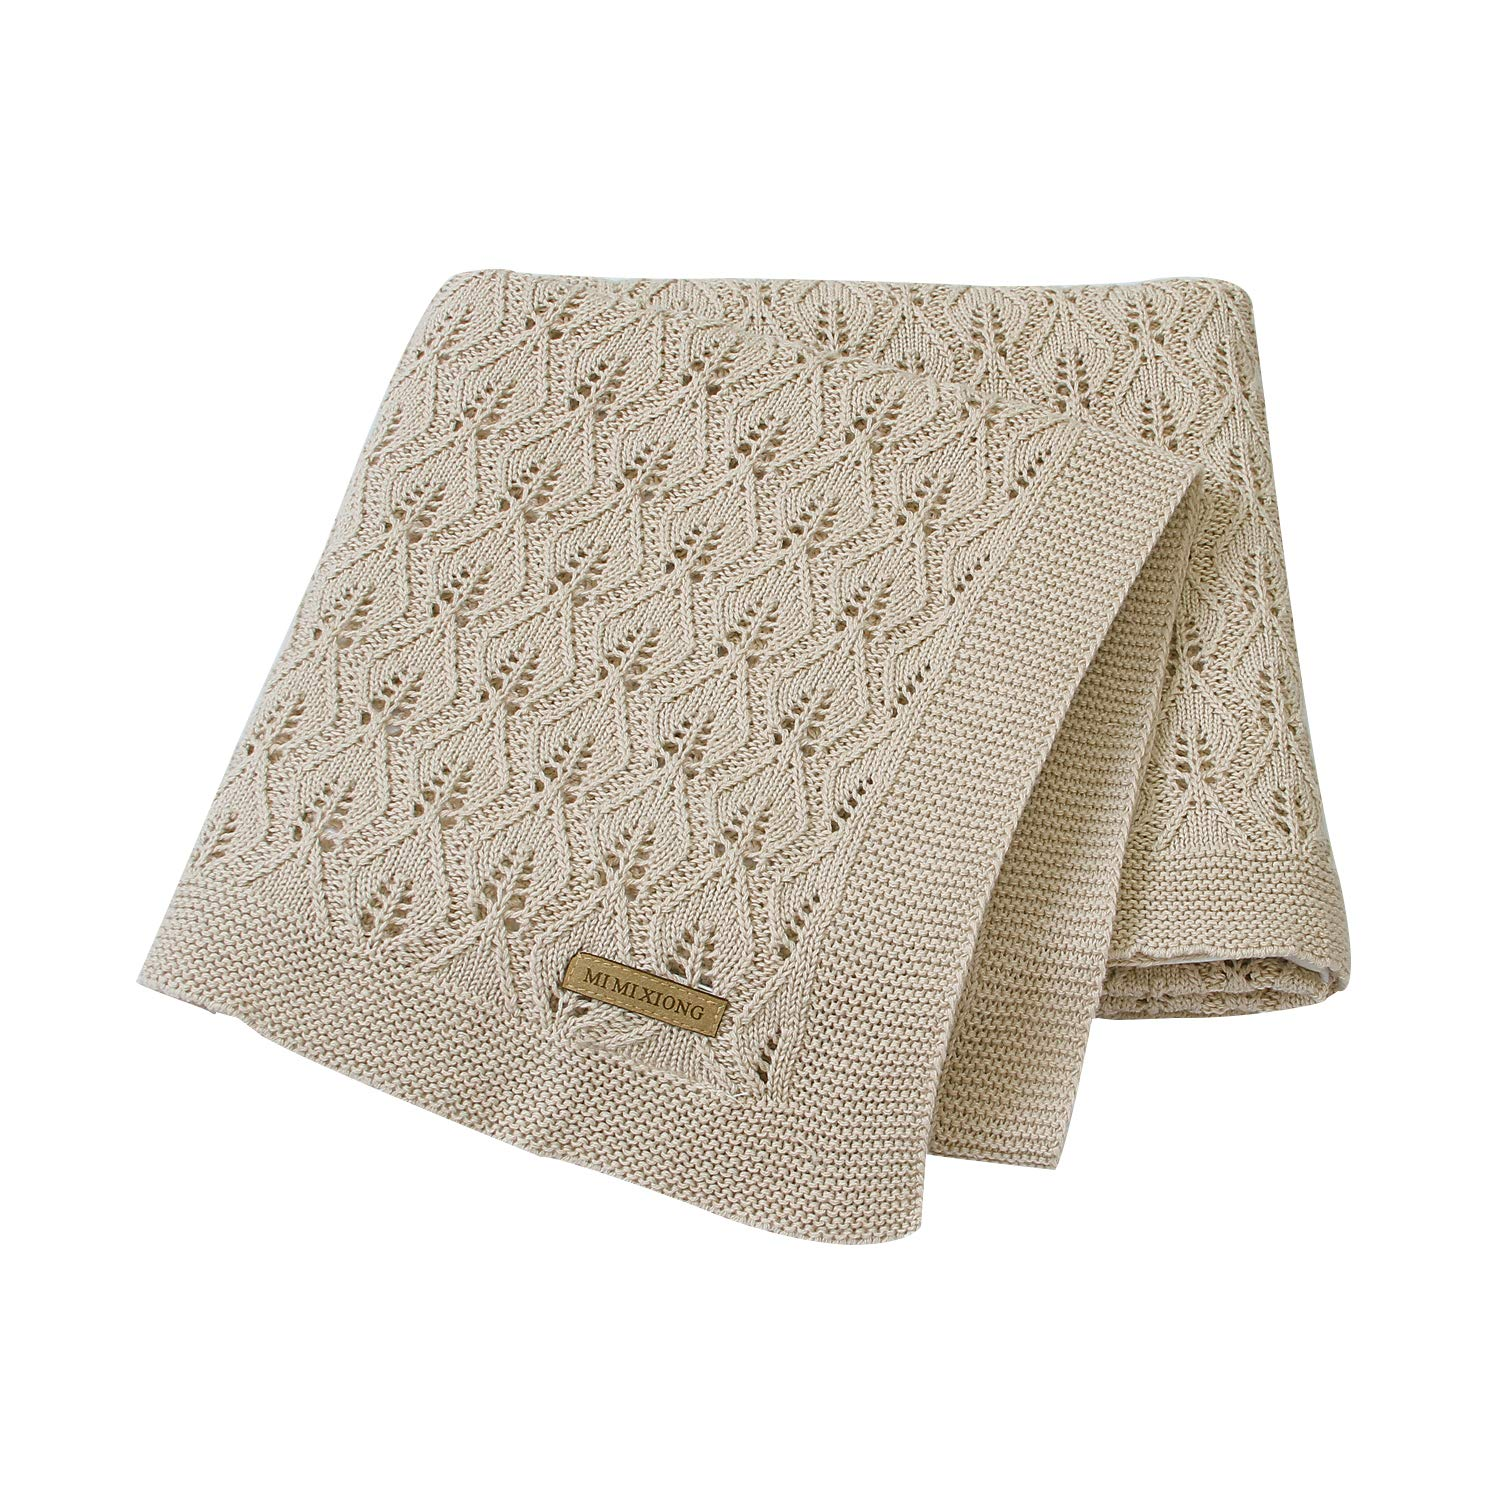 mimixiong 100% Cotton Baby Blanket Knit Cellular Toddler Blankets for Boys and Girls Light Camel 40x30 Inch